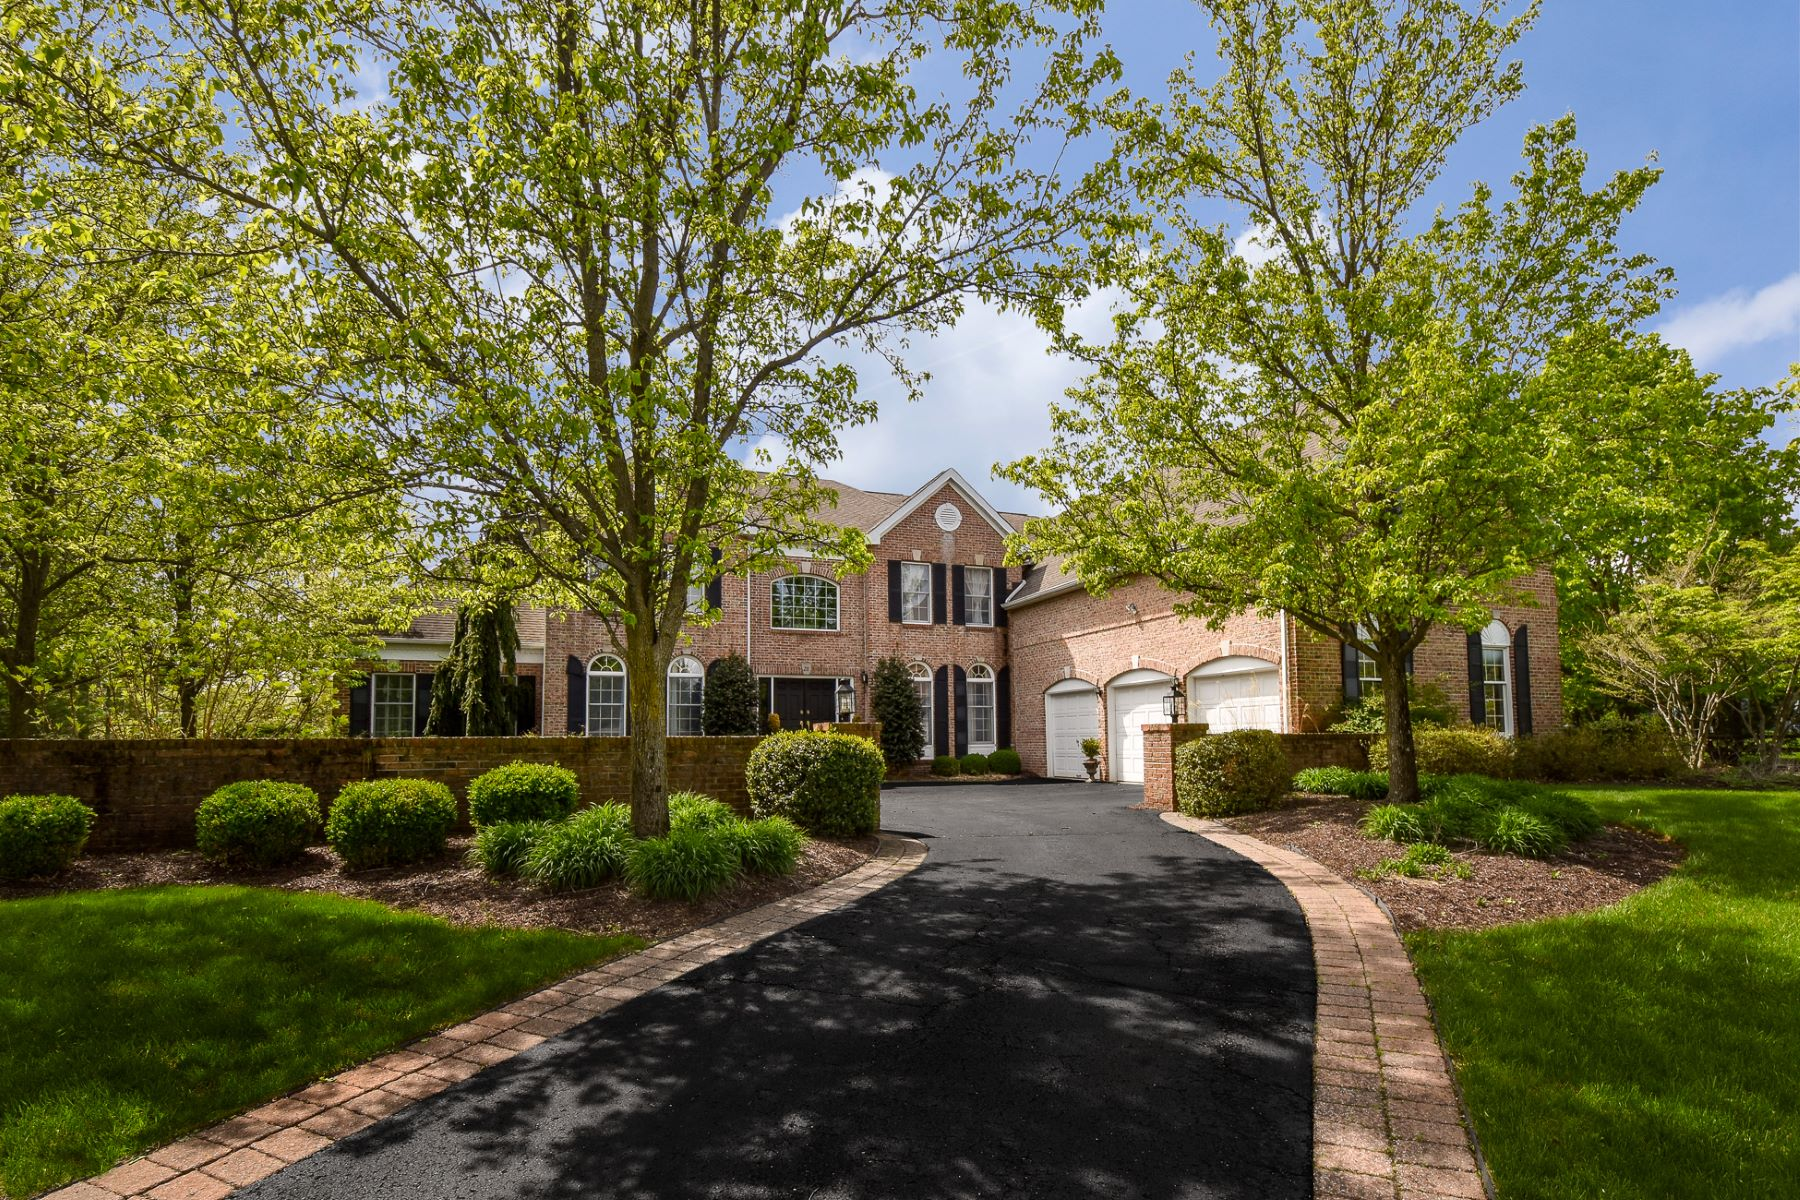 Property para Venda às Nothing Short Of Exquisite in Bedens Brook Estates 28 Green Meadow Road, Skillman, Nova Jersey 08558 Estados Unidos